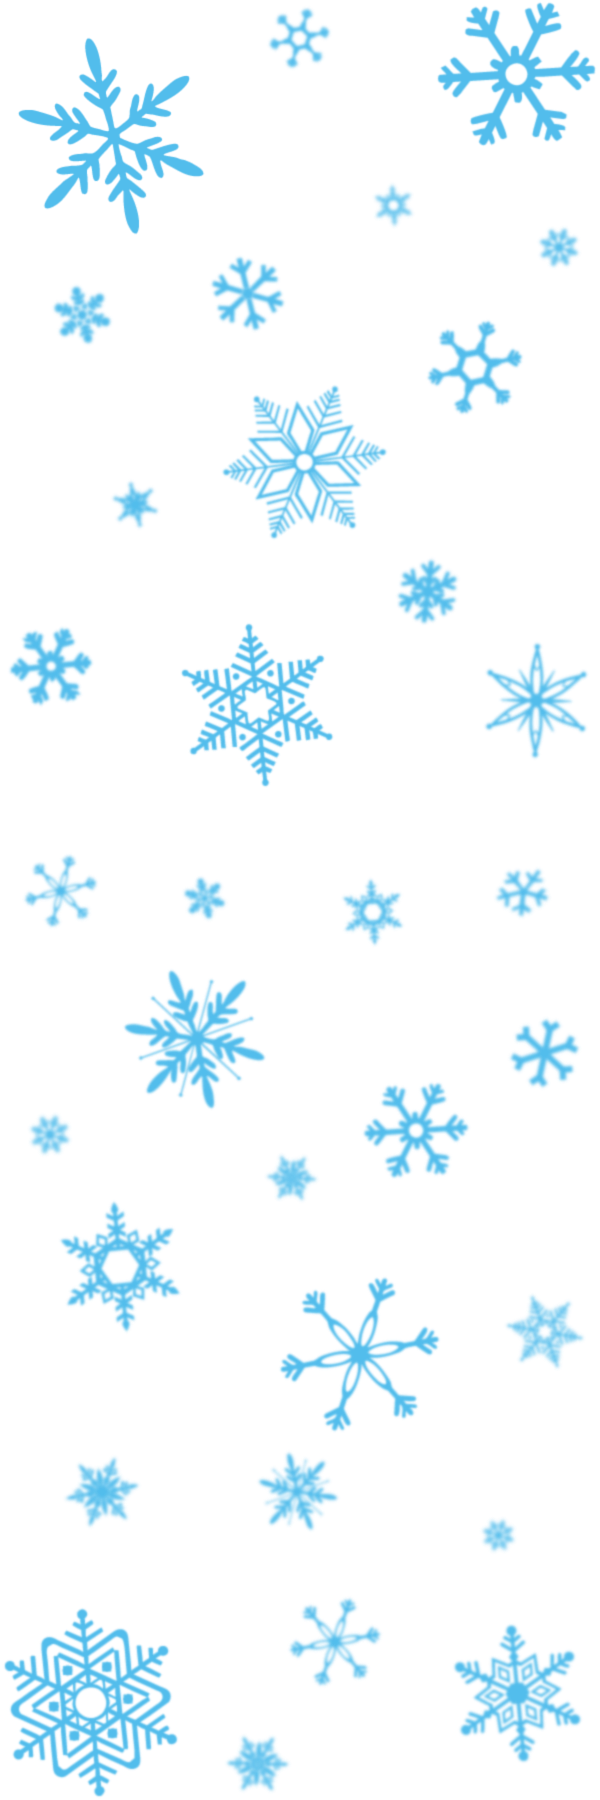 Snowflakes transparent pictures free. Snowflake frame png